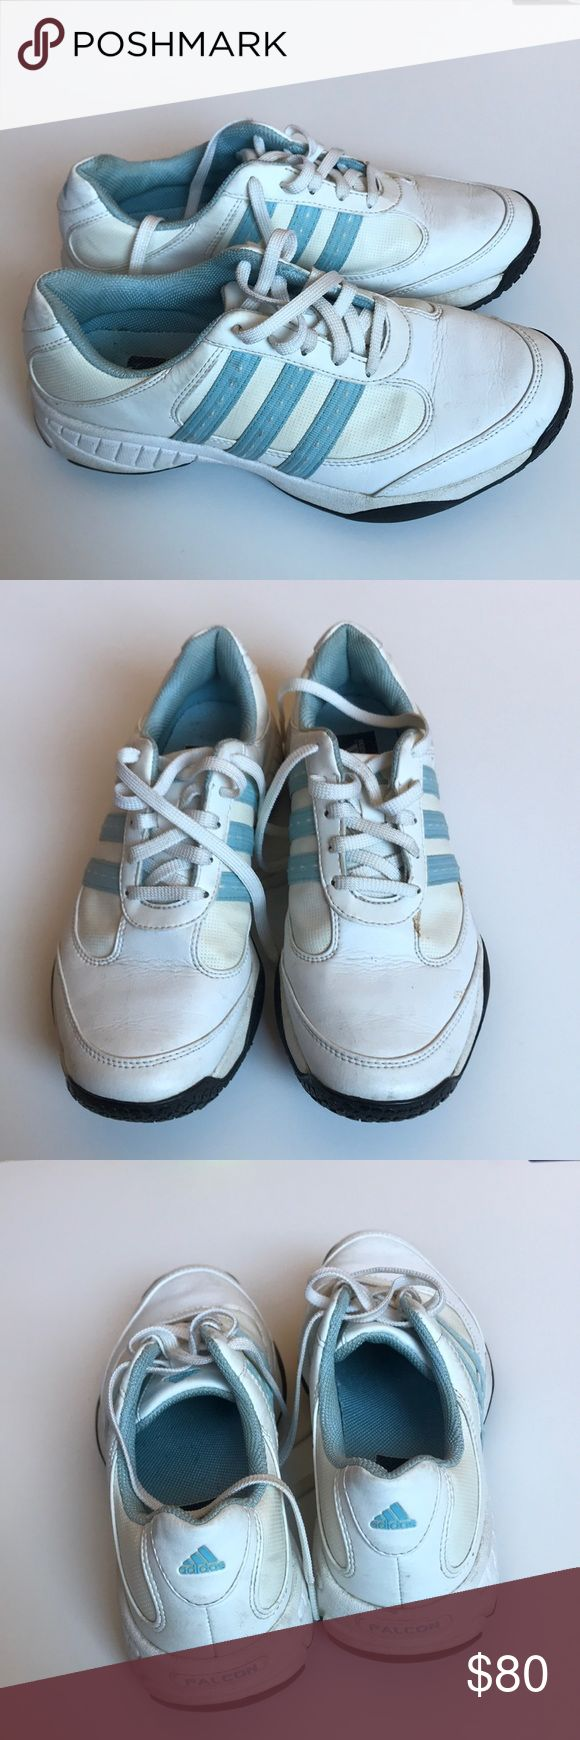 Adidas Falcon Baby Blue and White Golf spike Shoes These are size 6 Adidas Falcon golf shoes with baby blue stripes and interior. They have all golf spikes and each are in great condition. They have been worn but still have lots of life in them. There is a small yellow stain on the left shoe (as pictured). adidas Shoes Athletic Shoes